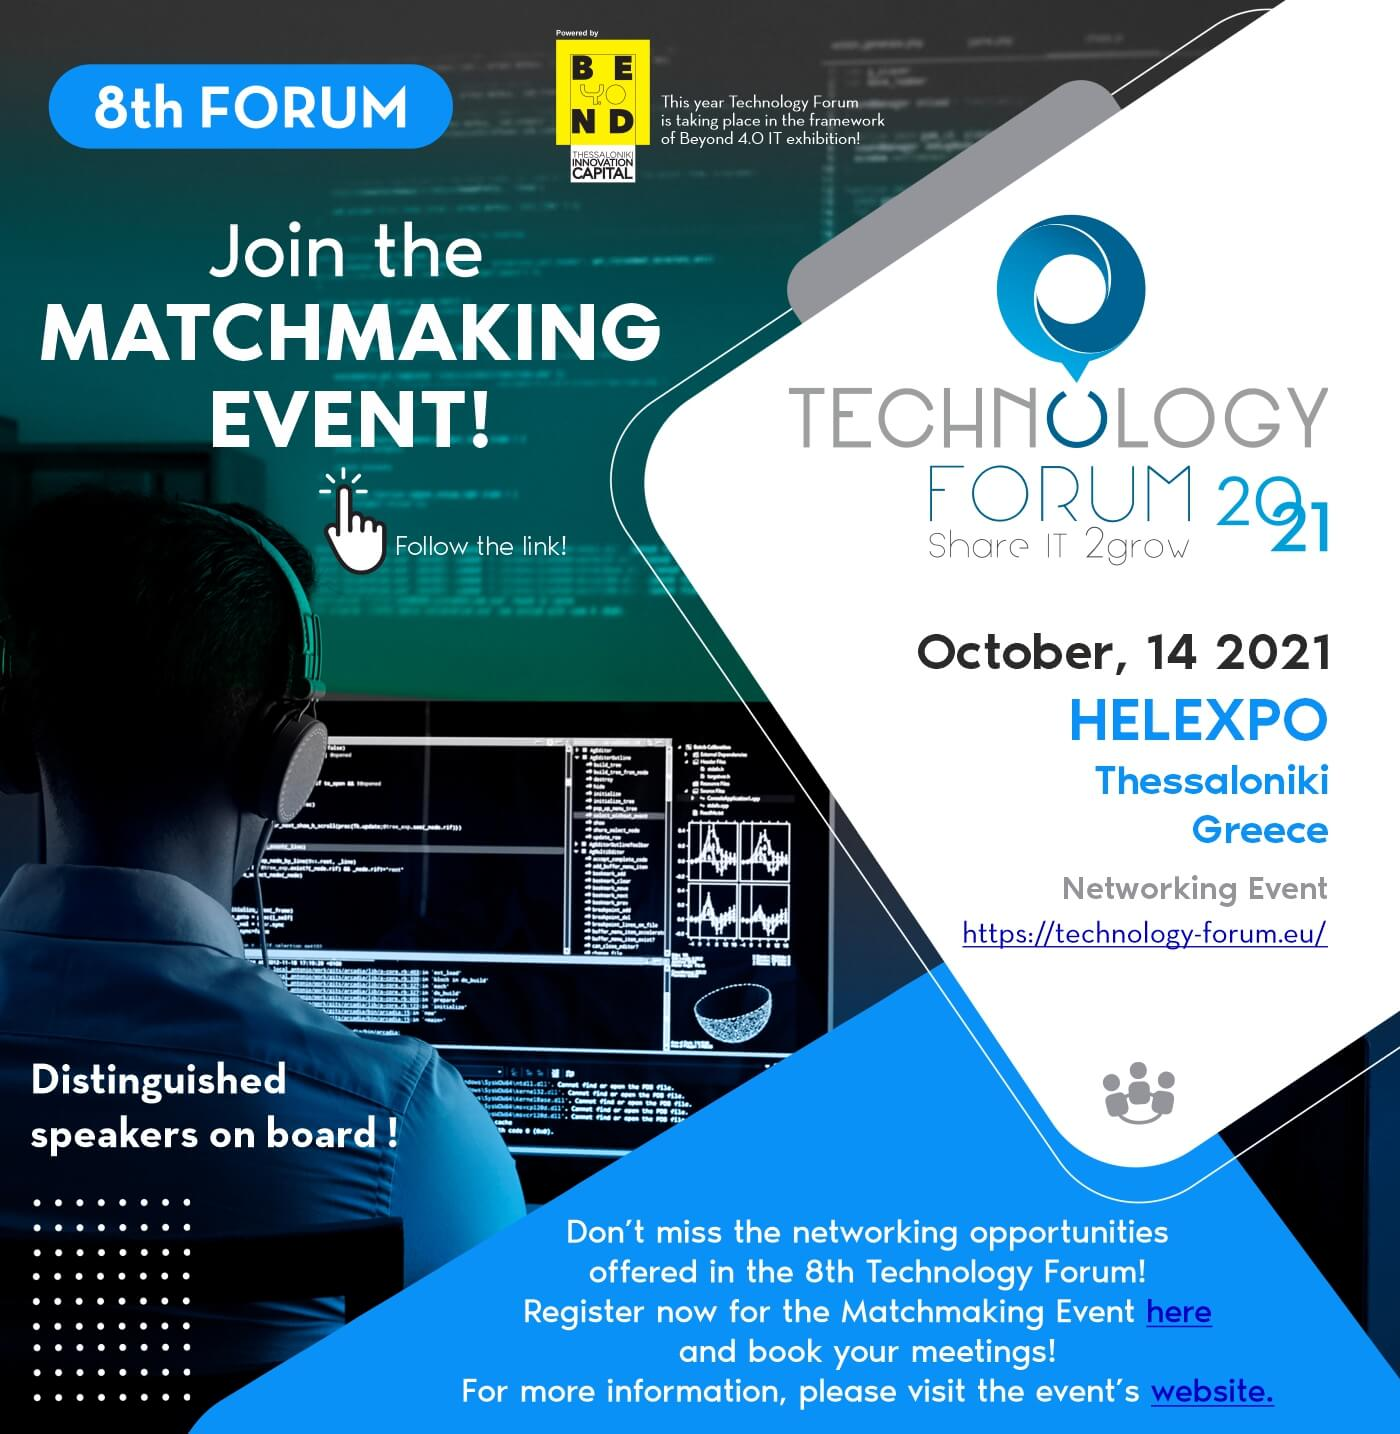 Technology Forum 2021 Matchmaking Event